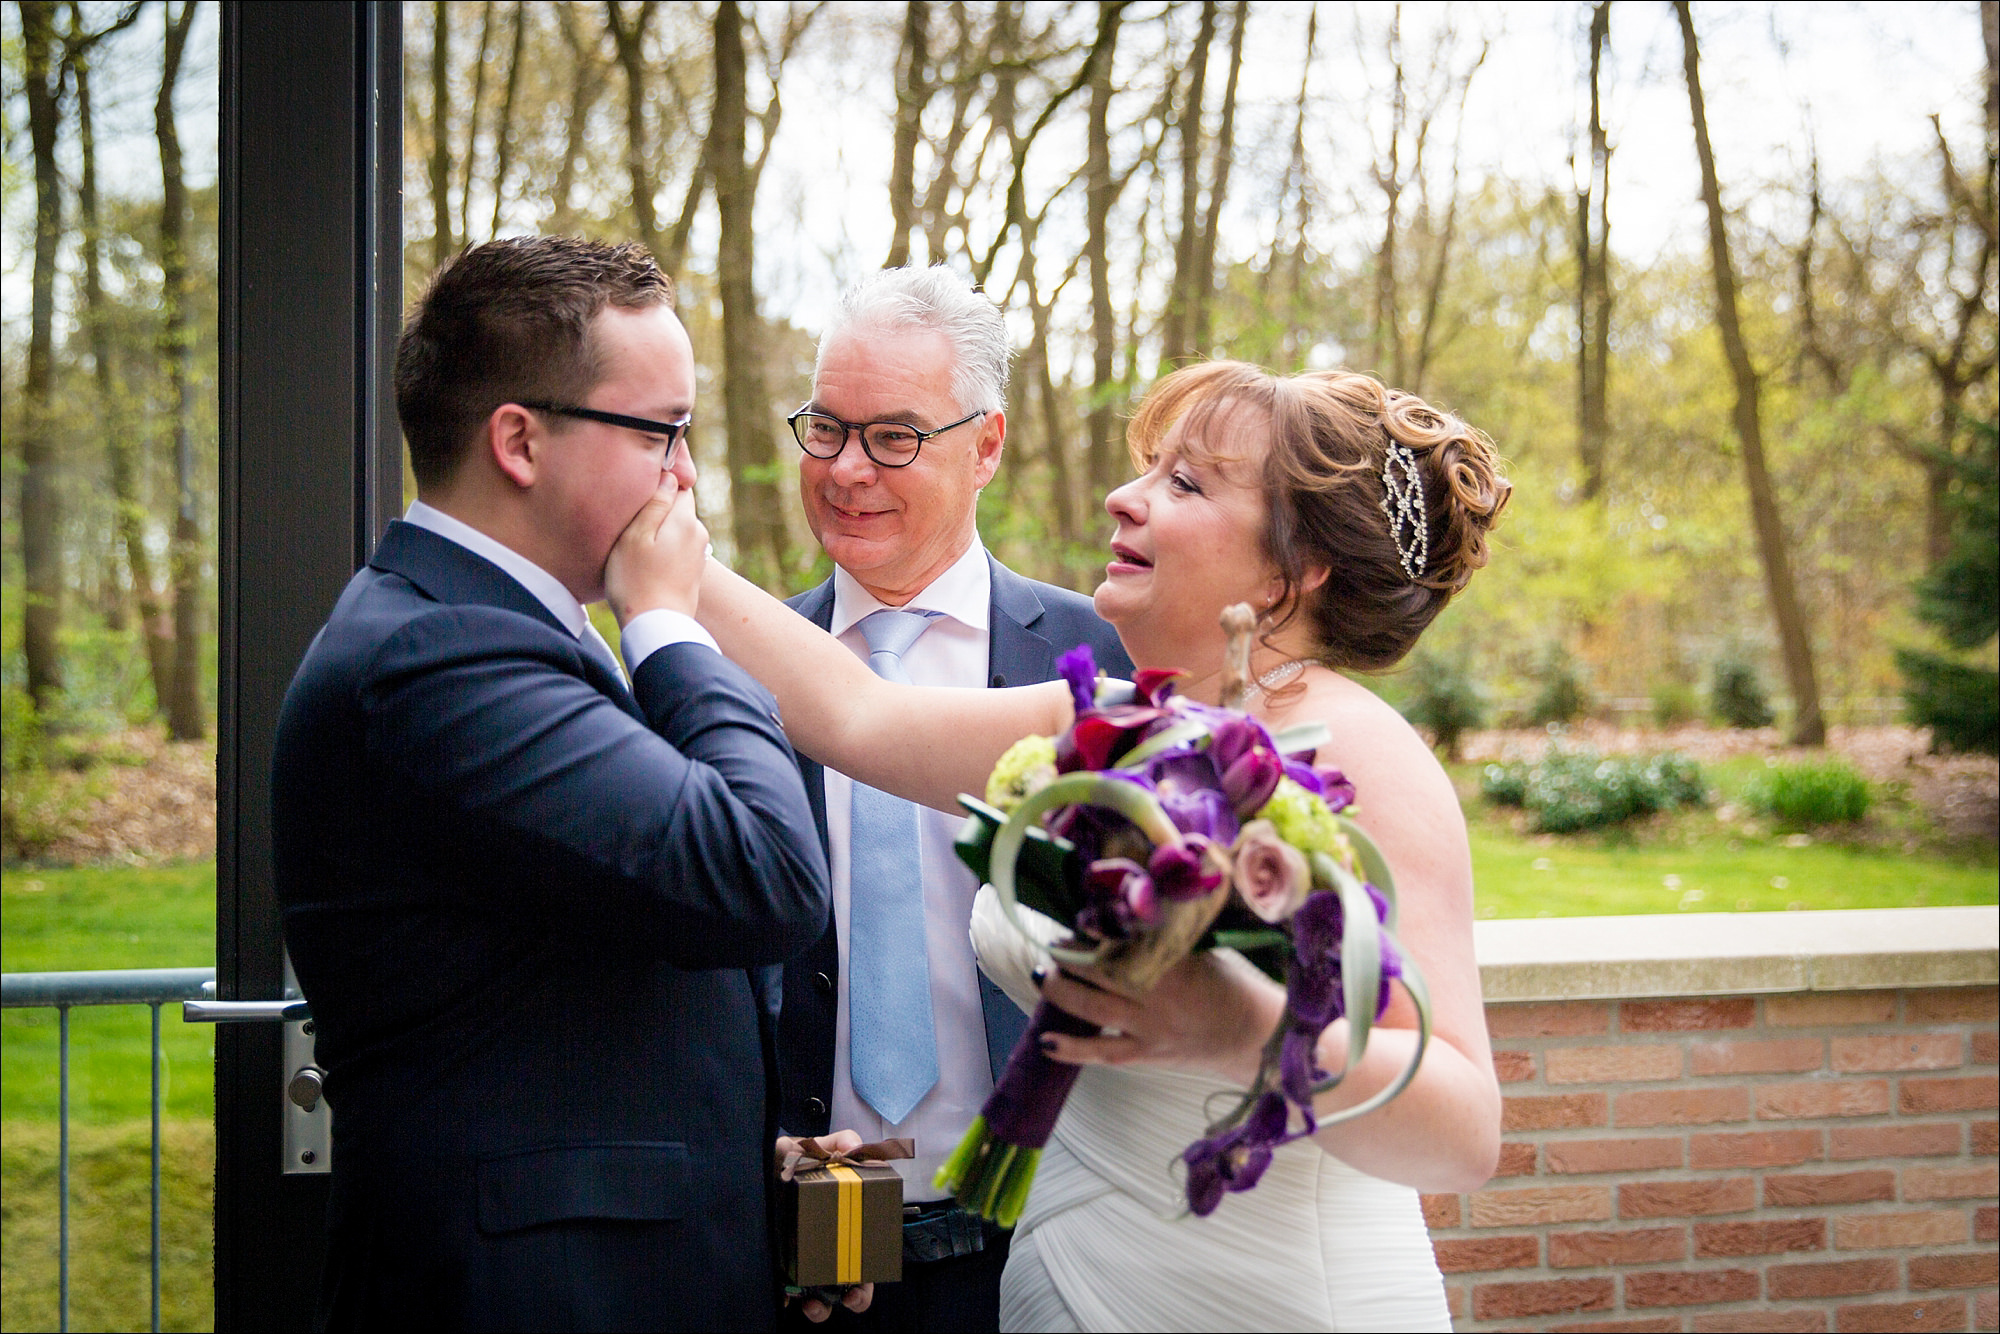 wedding photographer dublin david duignan photography real weddings Ireland 18